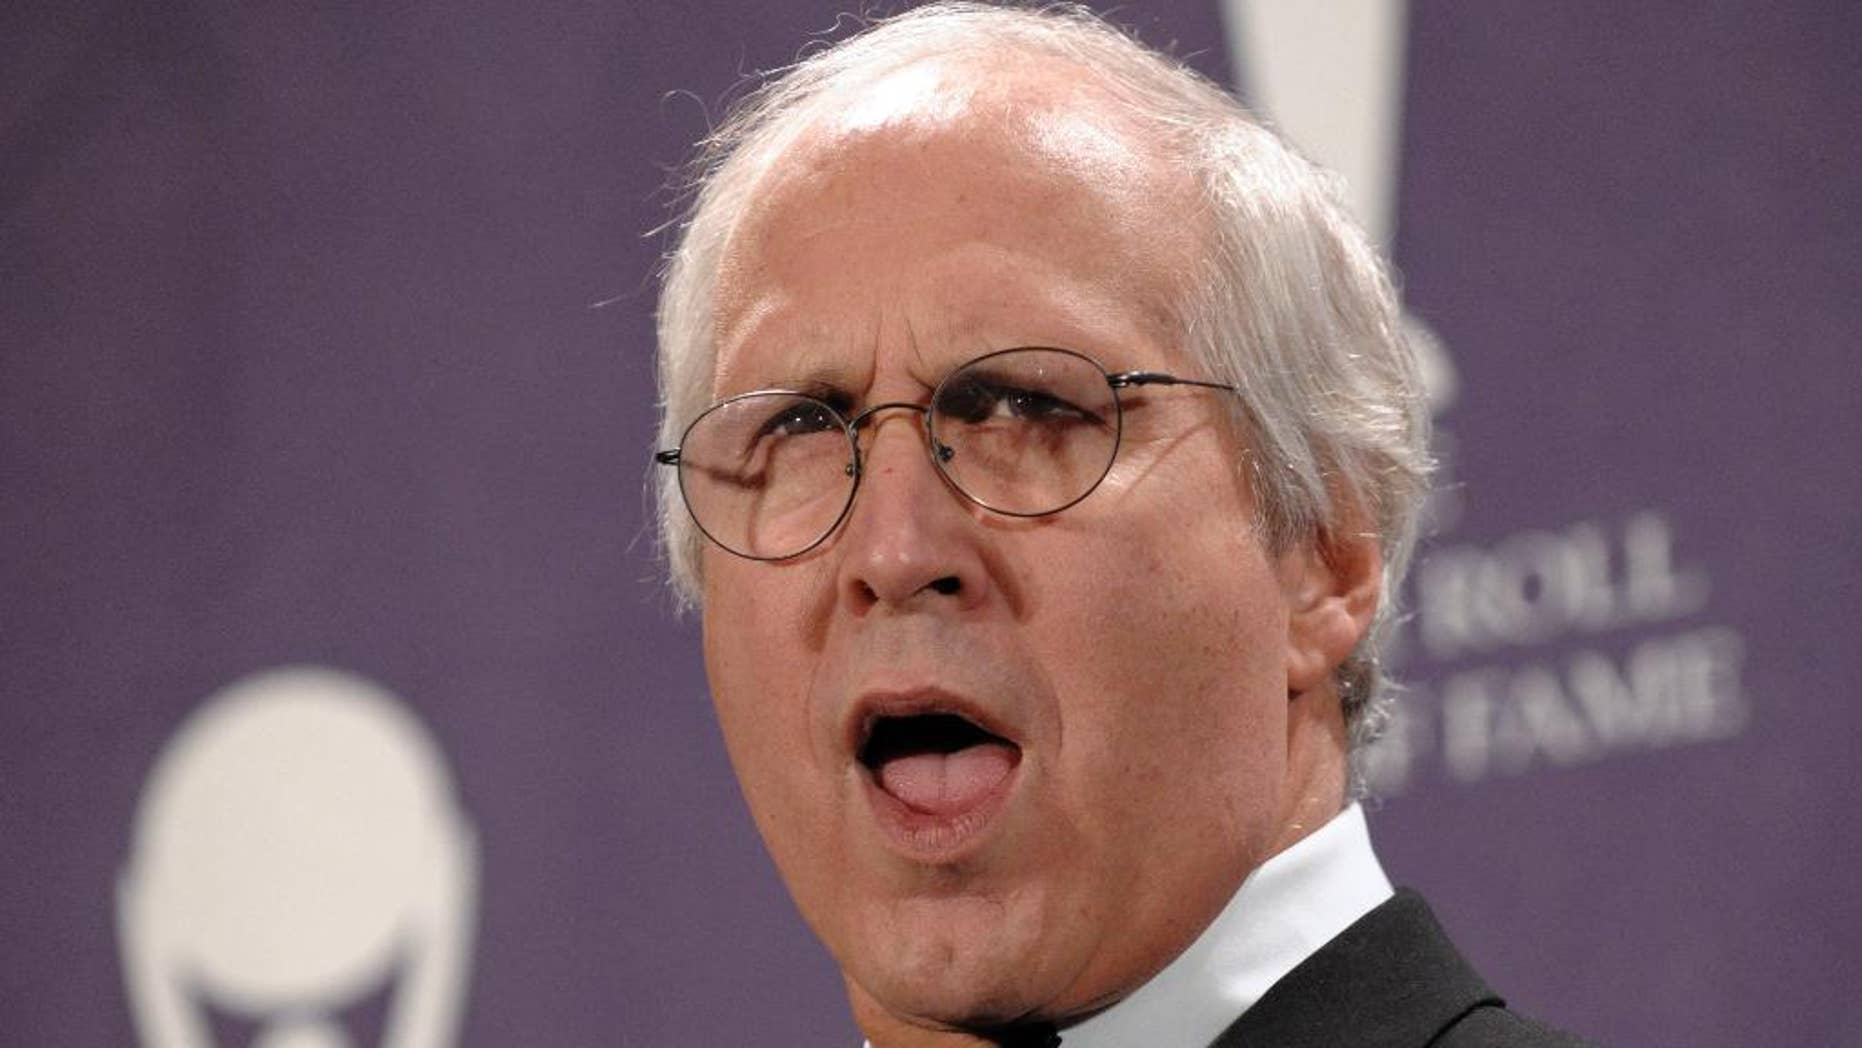 FILE - In this March 10, 2008, file photo, actor Chevy Chase poses